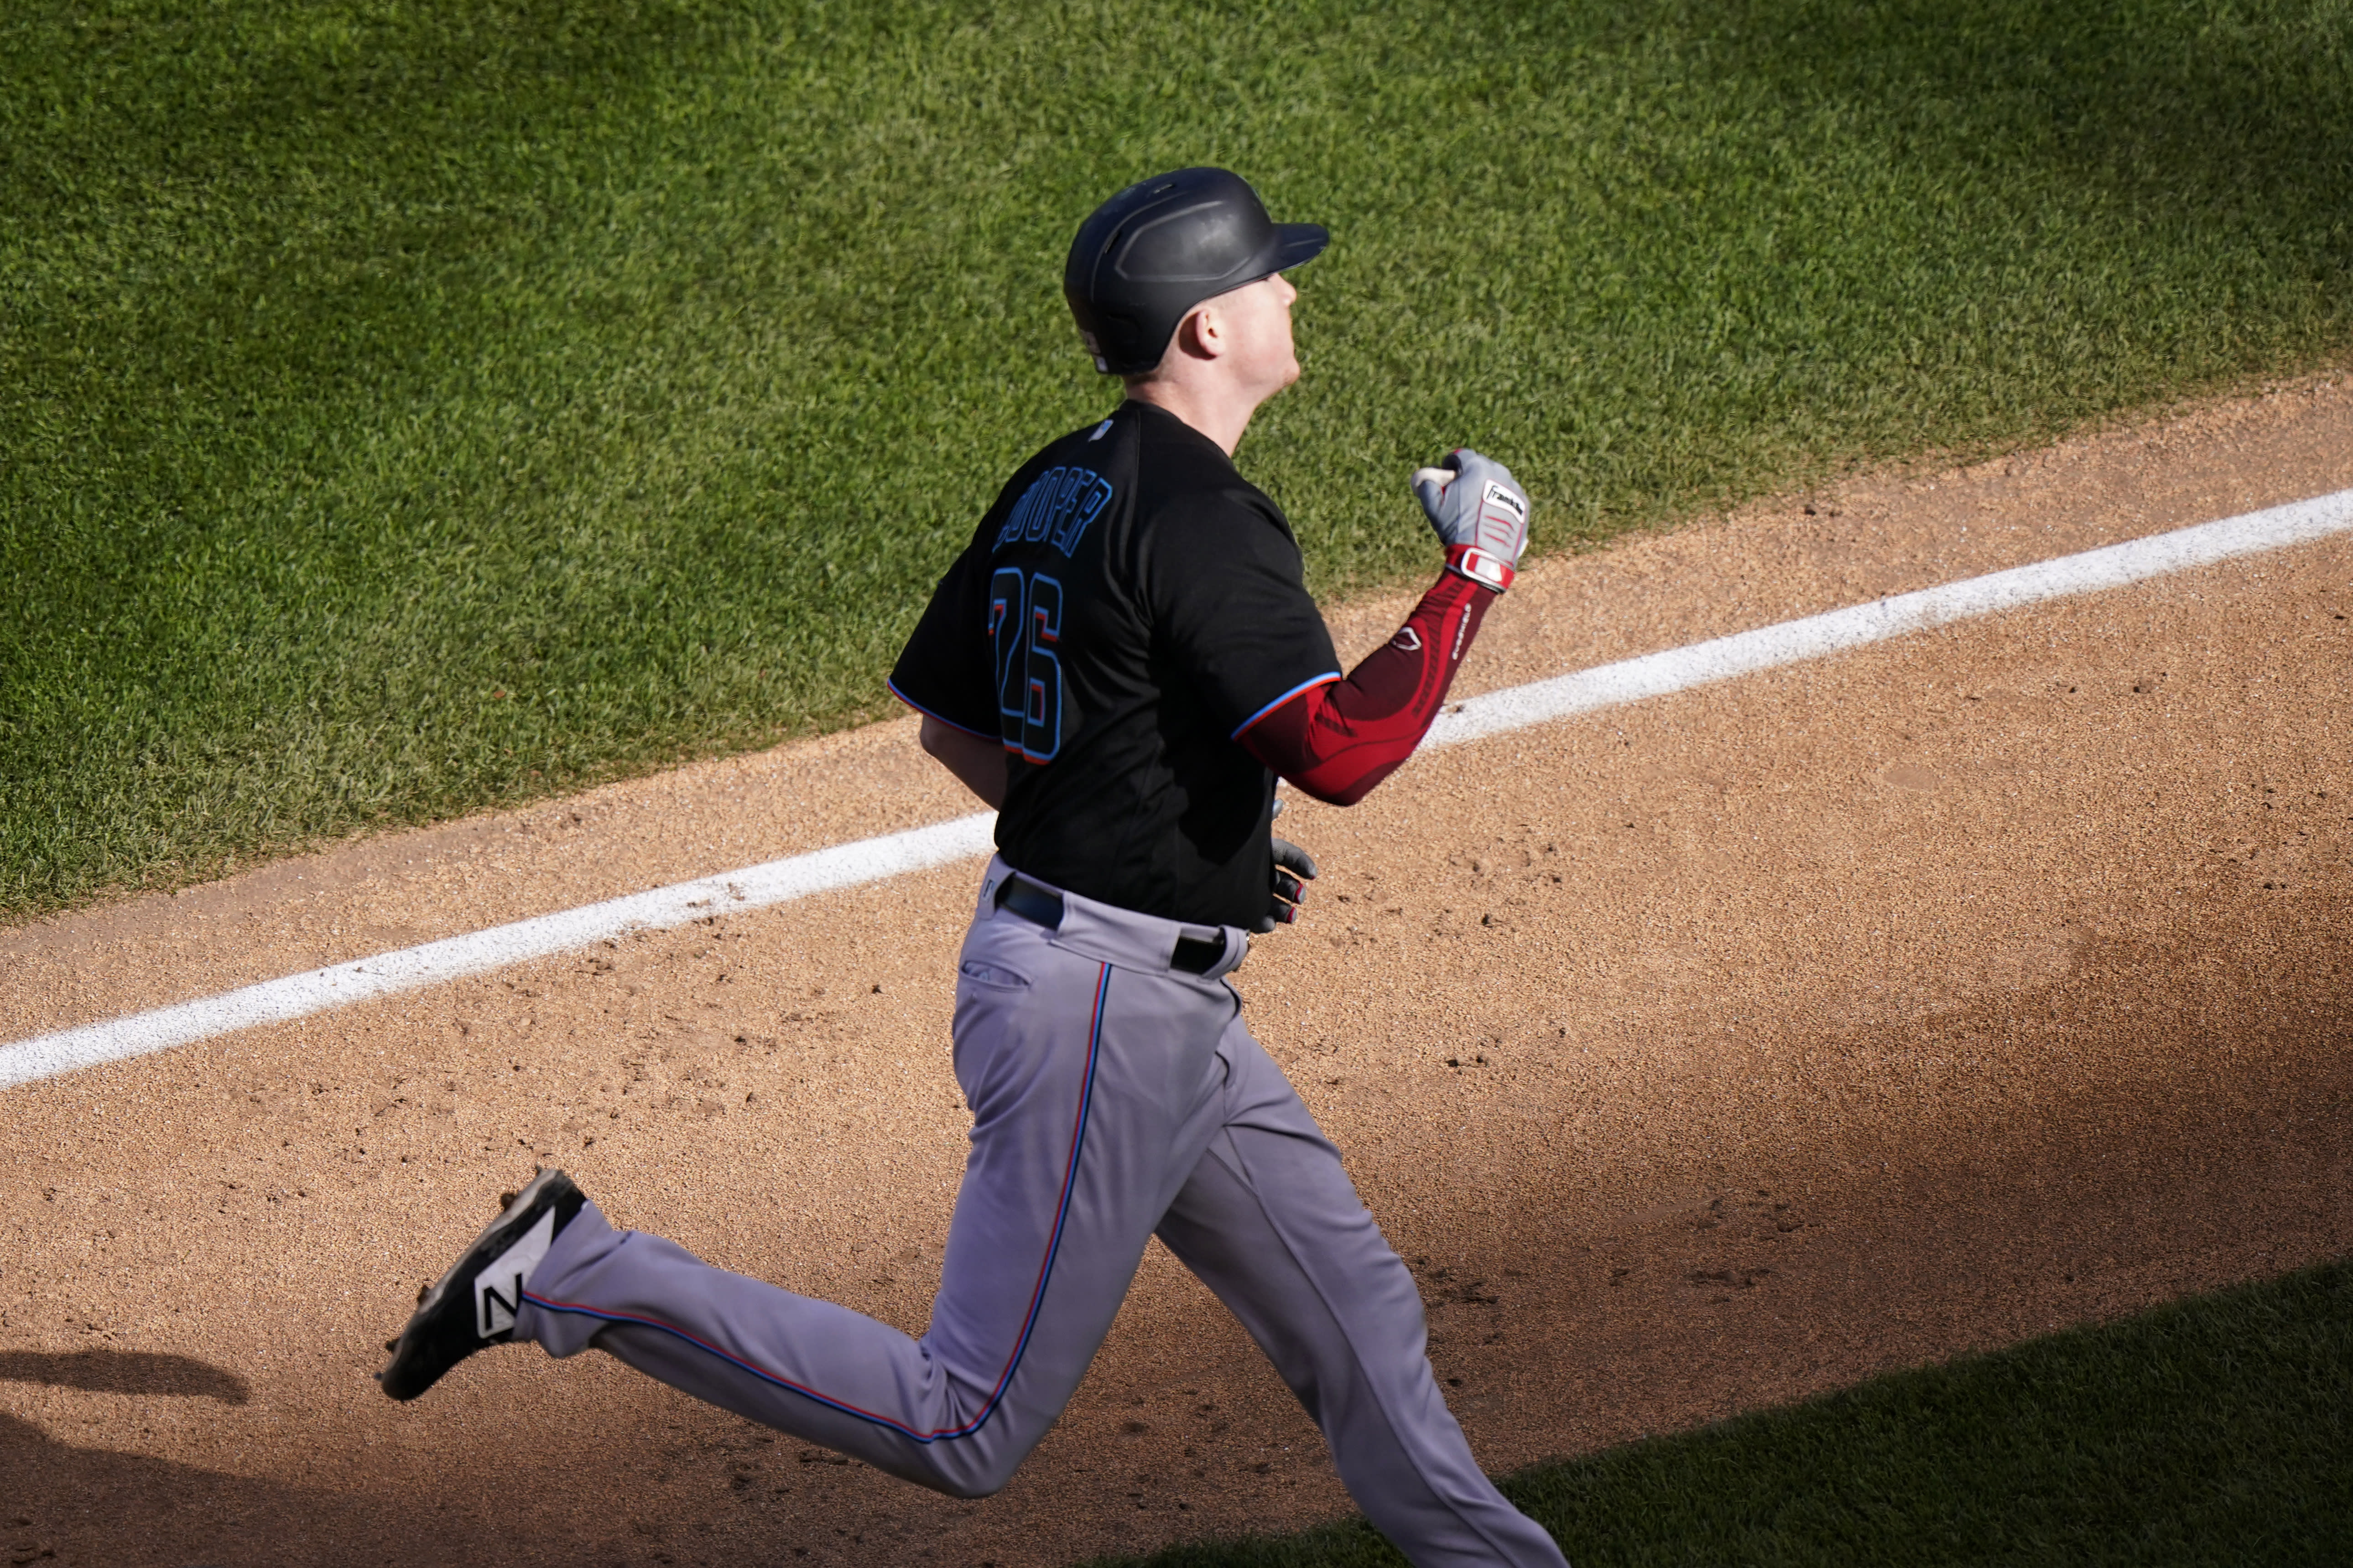 Miami Marlins' Garrett Cooper celebrates as he rounds the bases after hitting a solo home run during the seventh inning in Game 2 of a National League wild-card baseball series against the Chicago Cubs Friday, Oct. 2, 2020, in Chicago. (AP Photo/Nam Y. Huh)